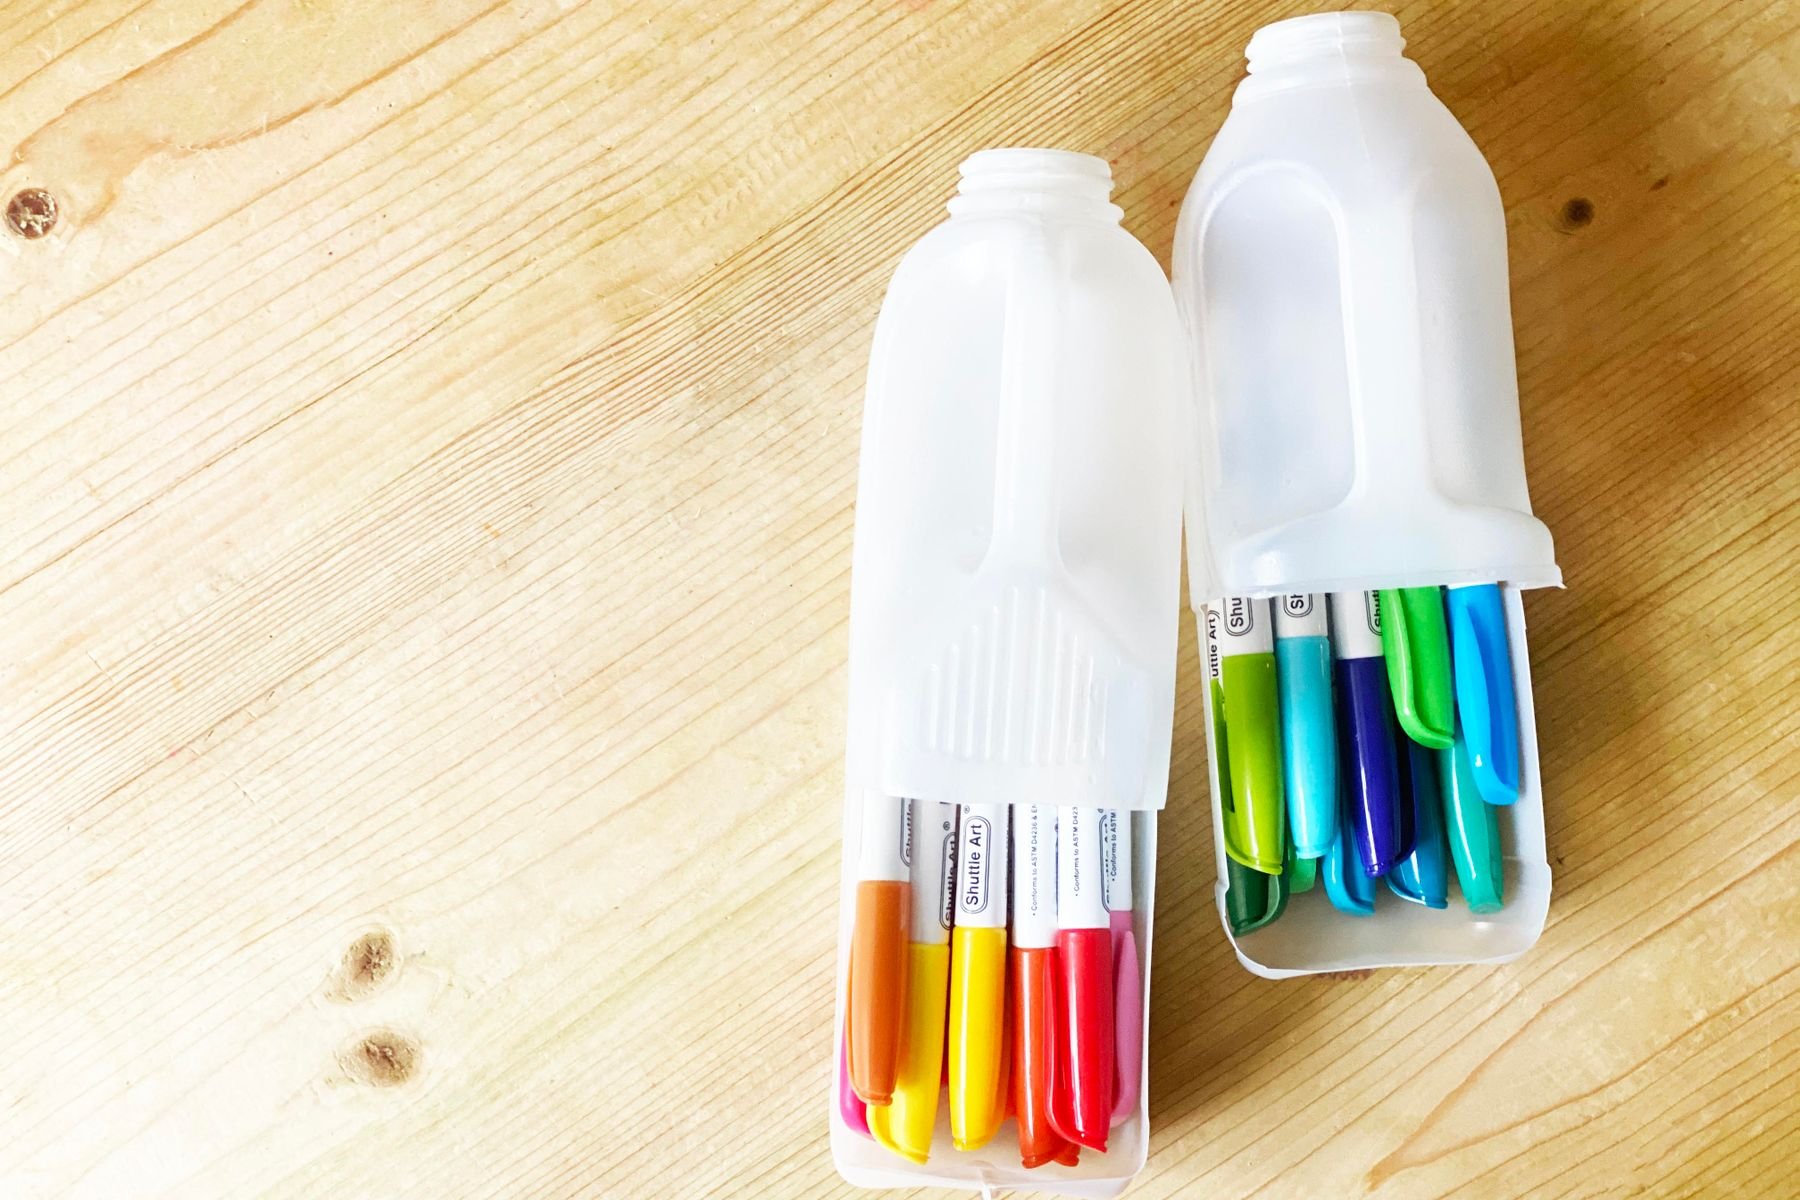 Milk bottles that have been upcycled into pen holders